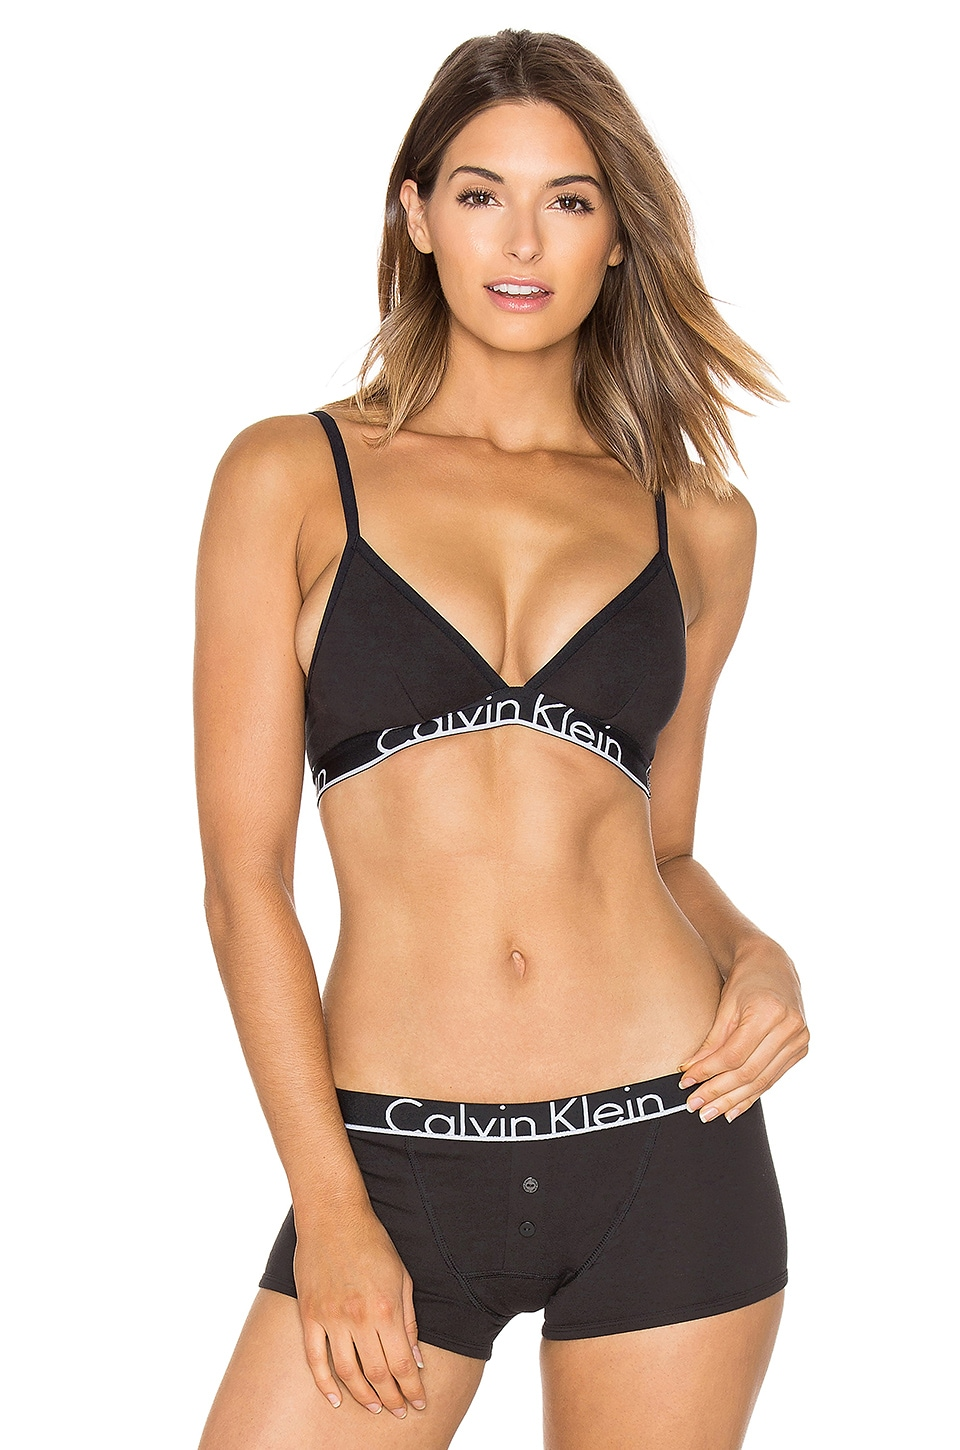 Calvin Klein Underwear Cotton Unlined Bra in Black